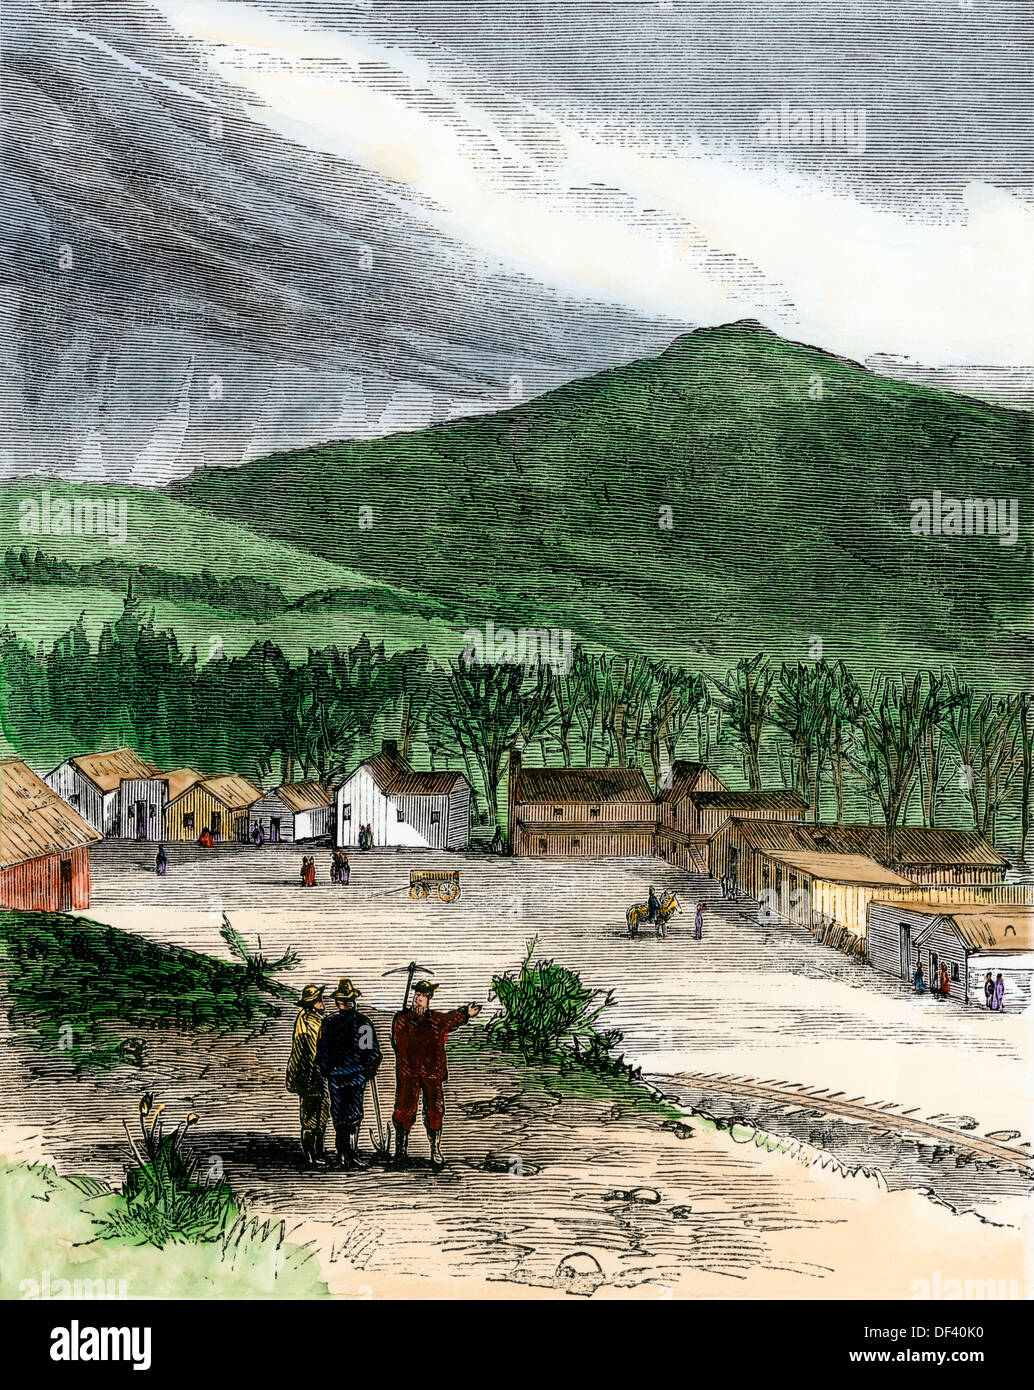 Transcontinental railroad workers' camp at Echo City, Utah, terminus of the Union Pacific RR, 1860s. Hand-colored woodcut - Stock Image